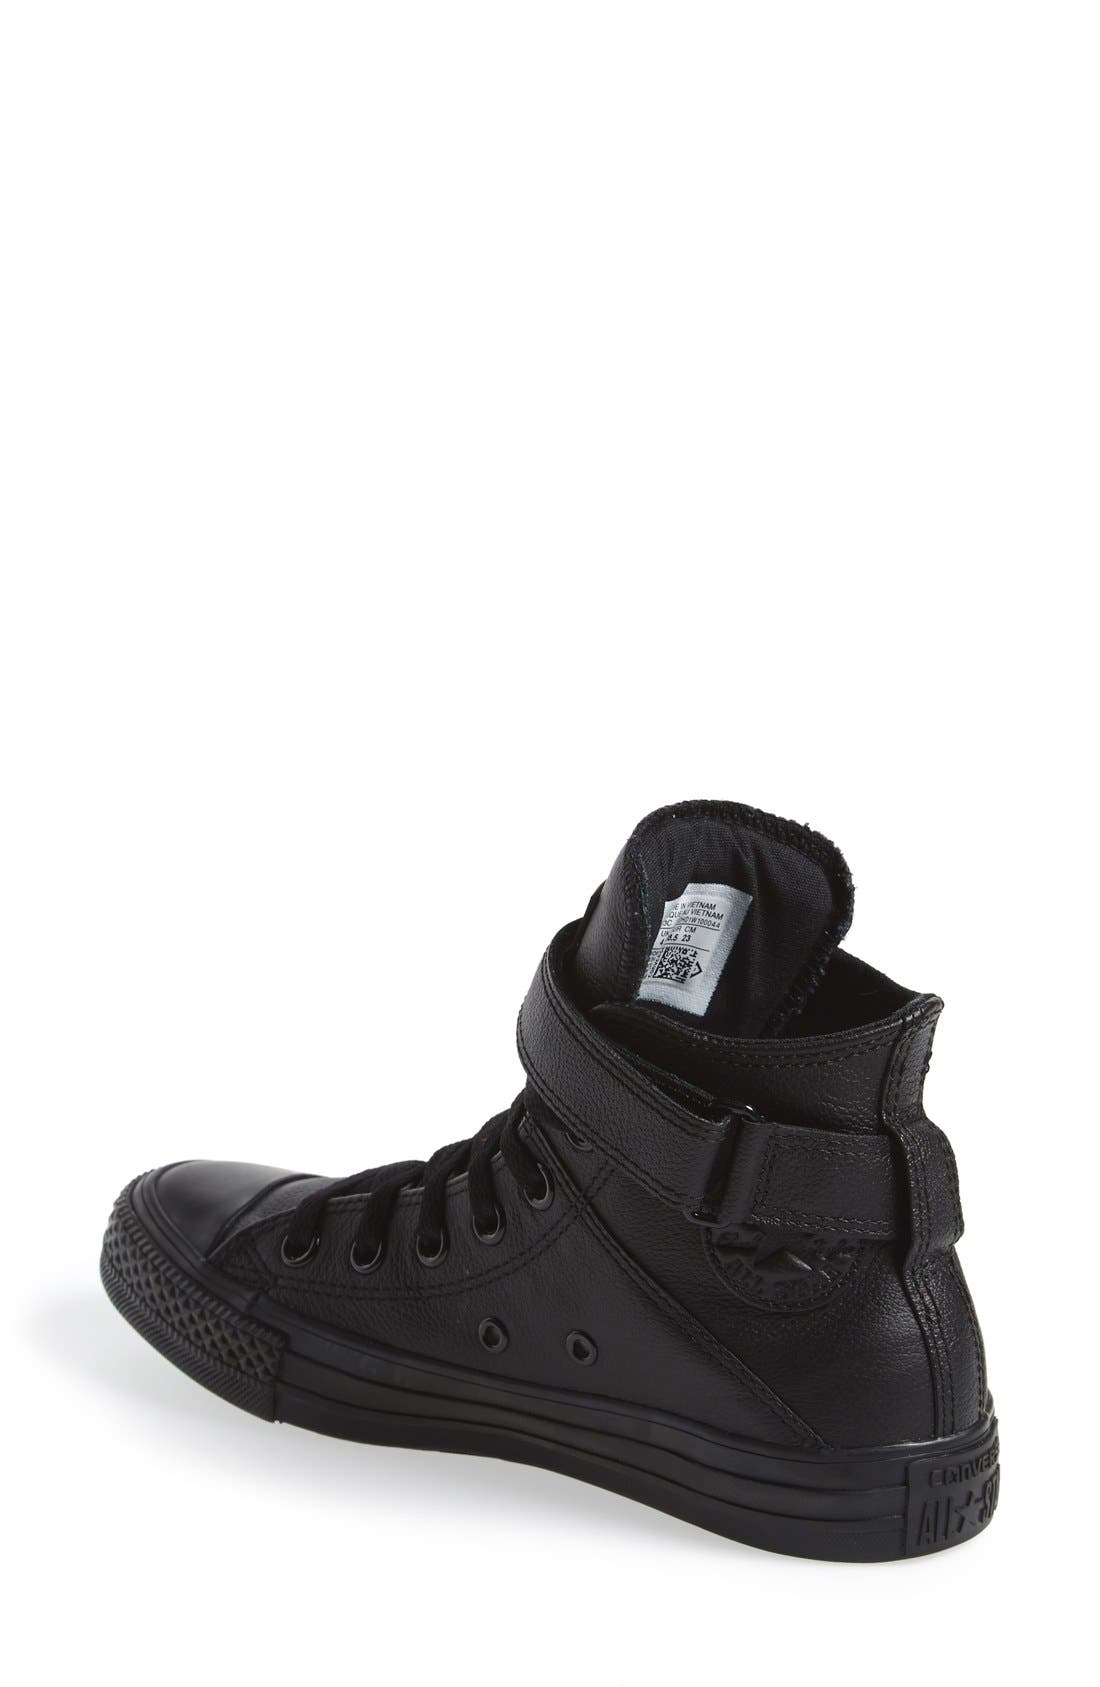 CONVERSE, Chuck Taylor<sup>®</sup> All Star<sup>®</sup> 'Brea' Leather High Top Sneaker, Alternate thumbnail 3, color, 001